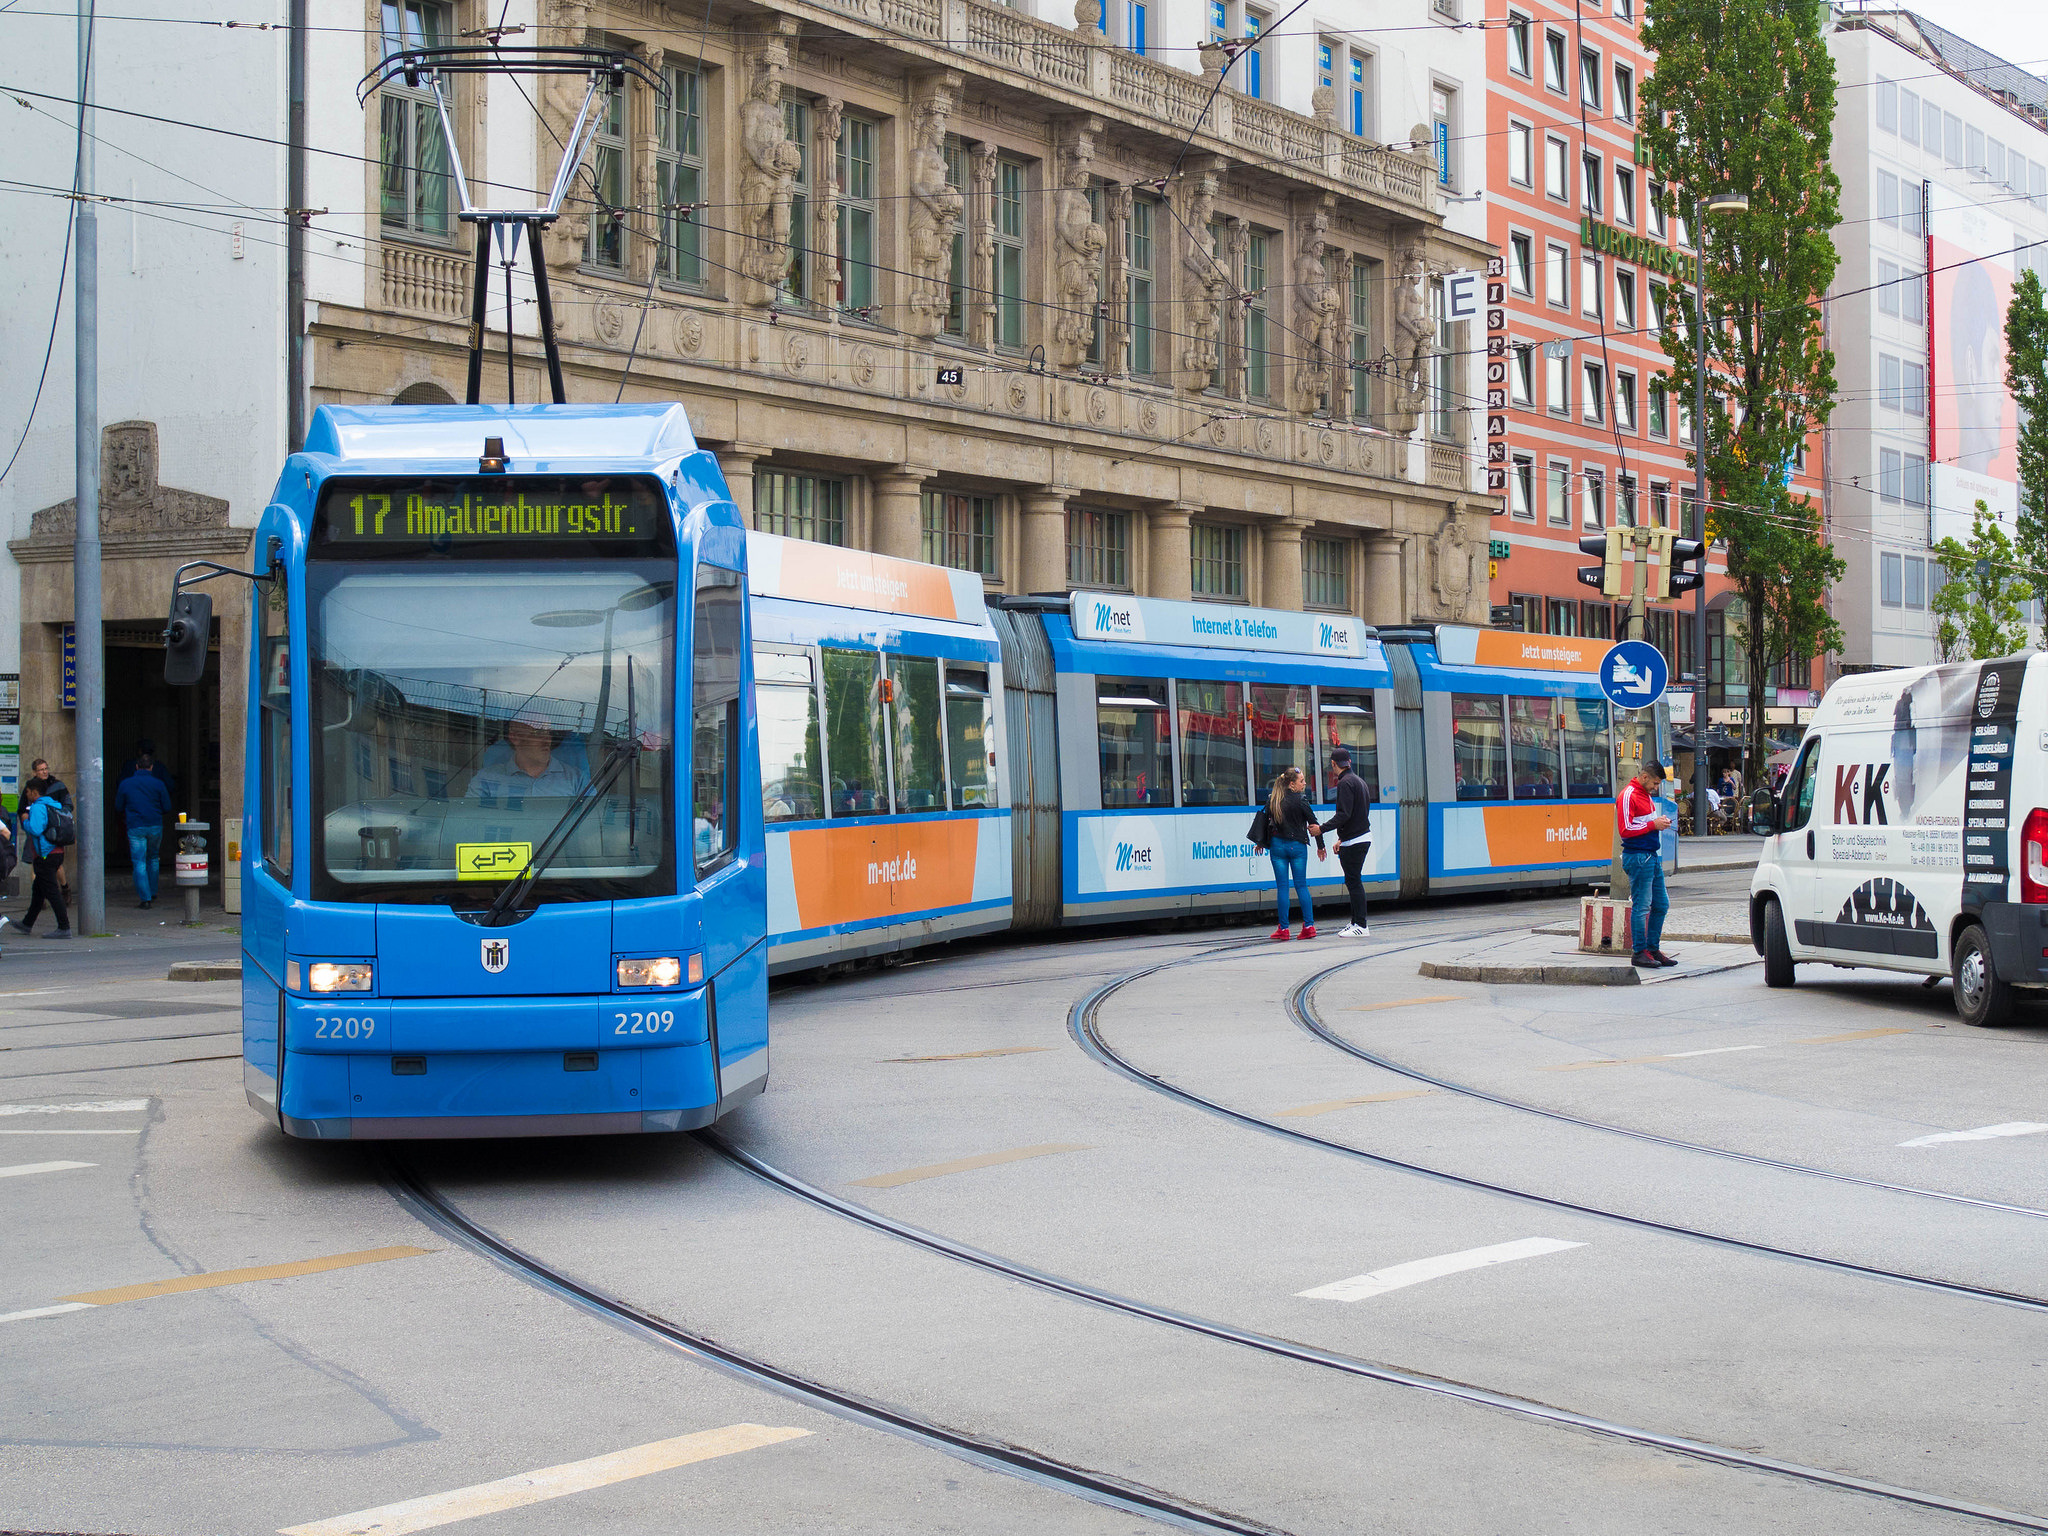 How to navigate public transport in Munich